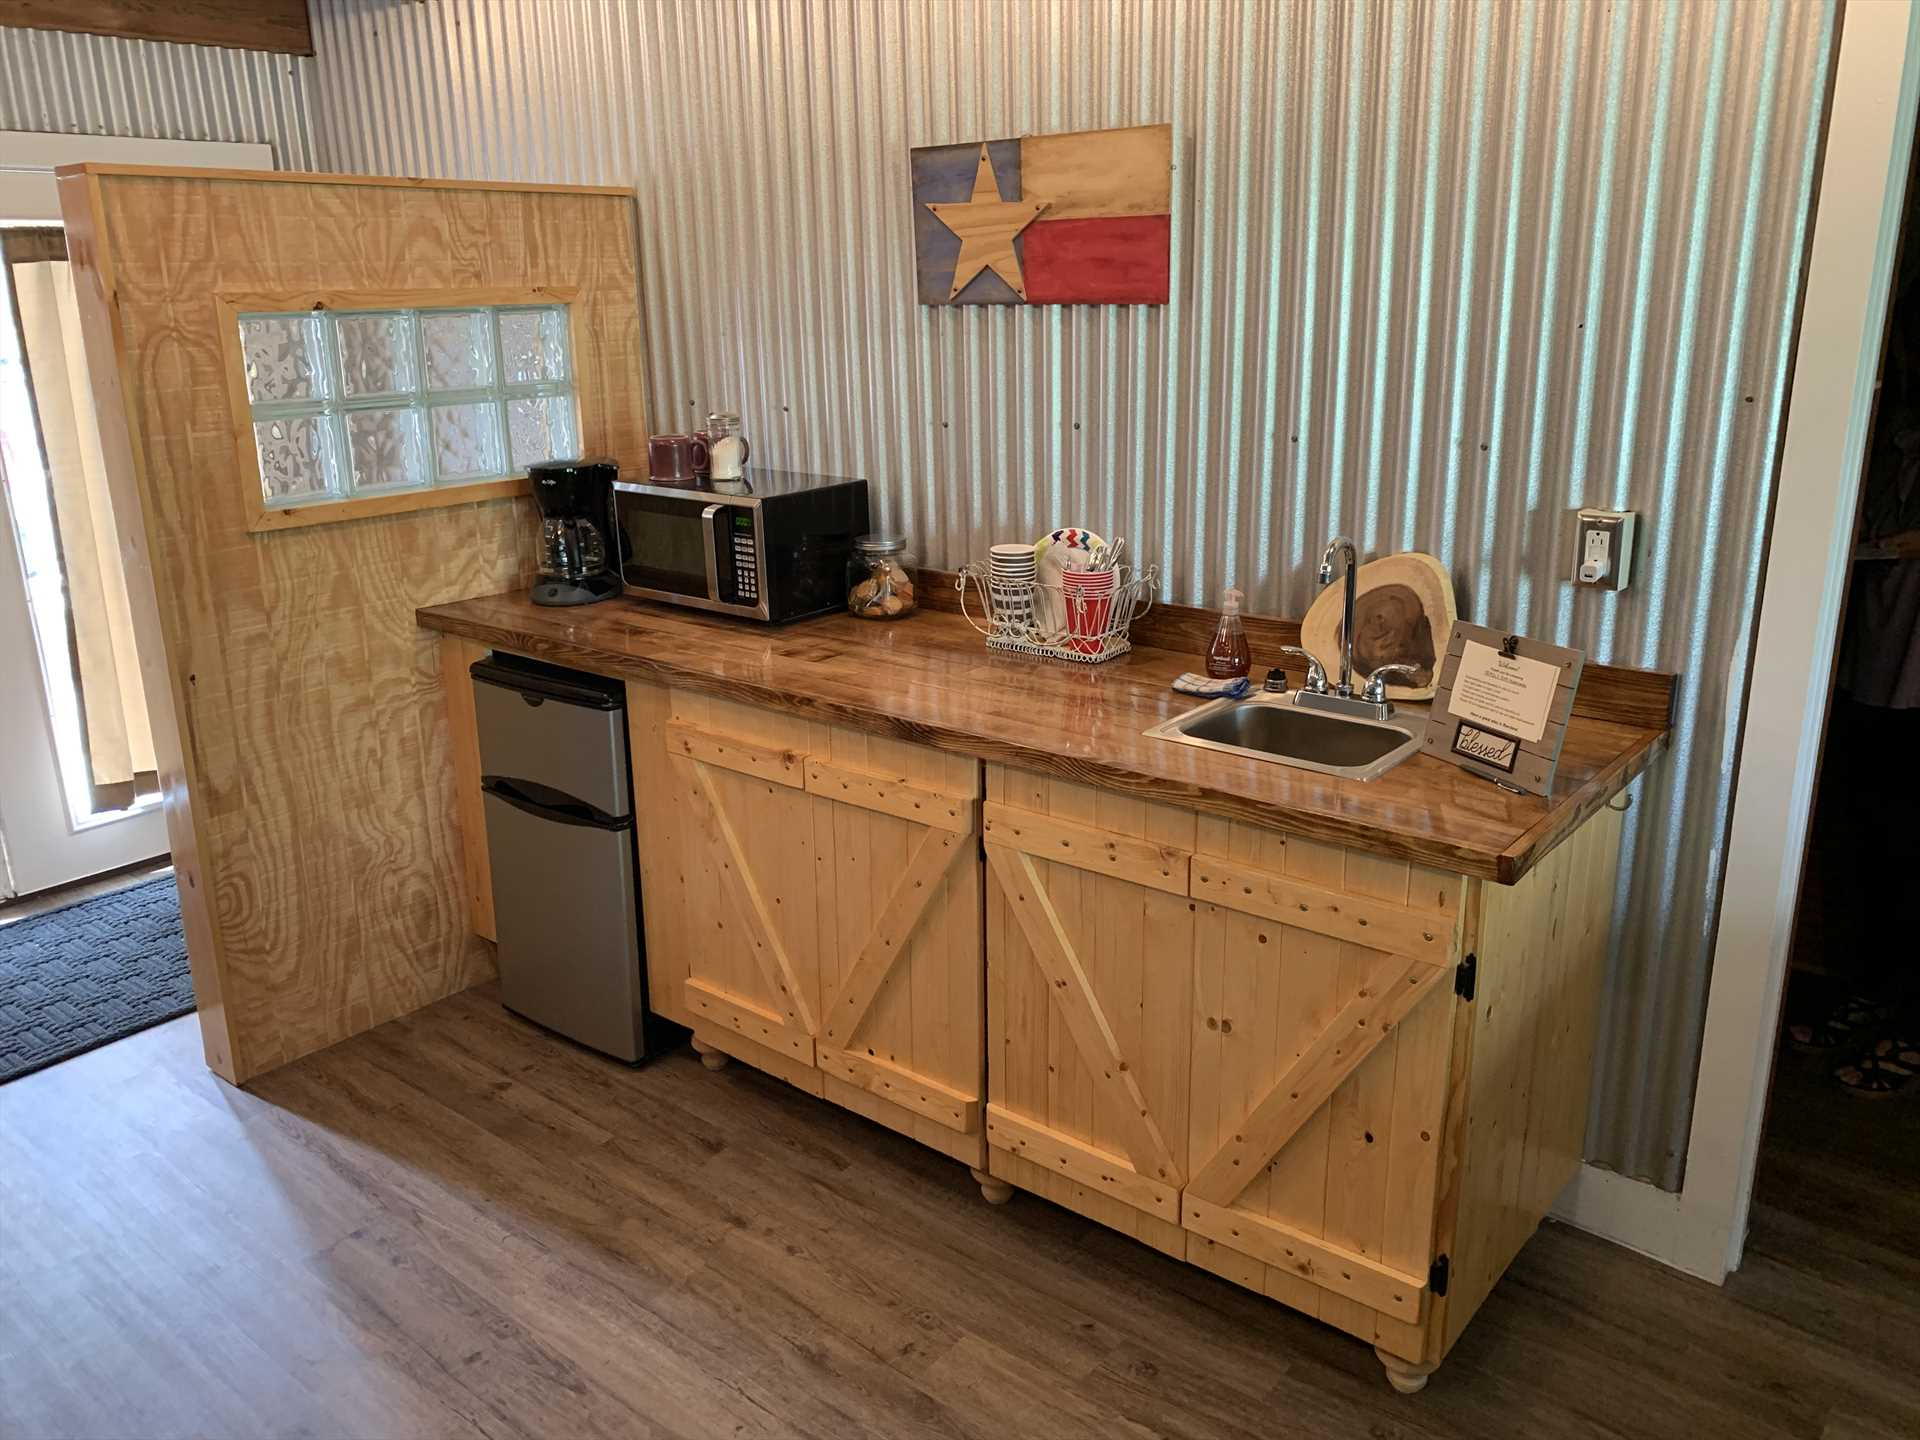 The tidy kitchenette also comes with complimentary coffee and disposable plates, utensils, and glasses.